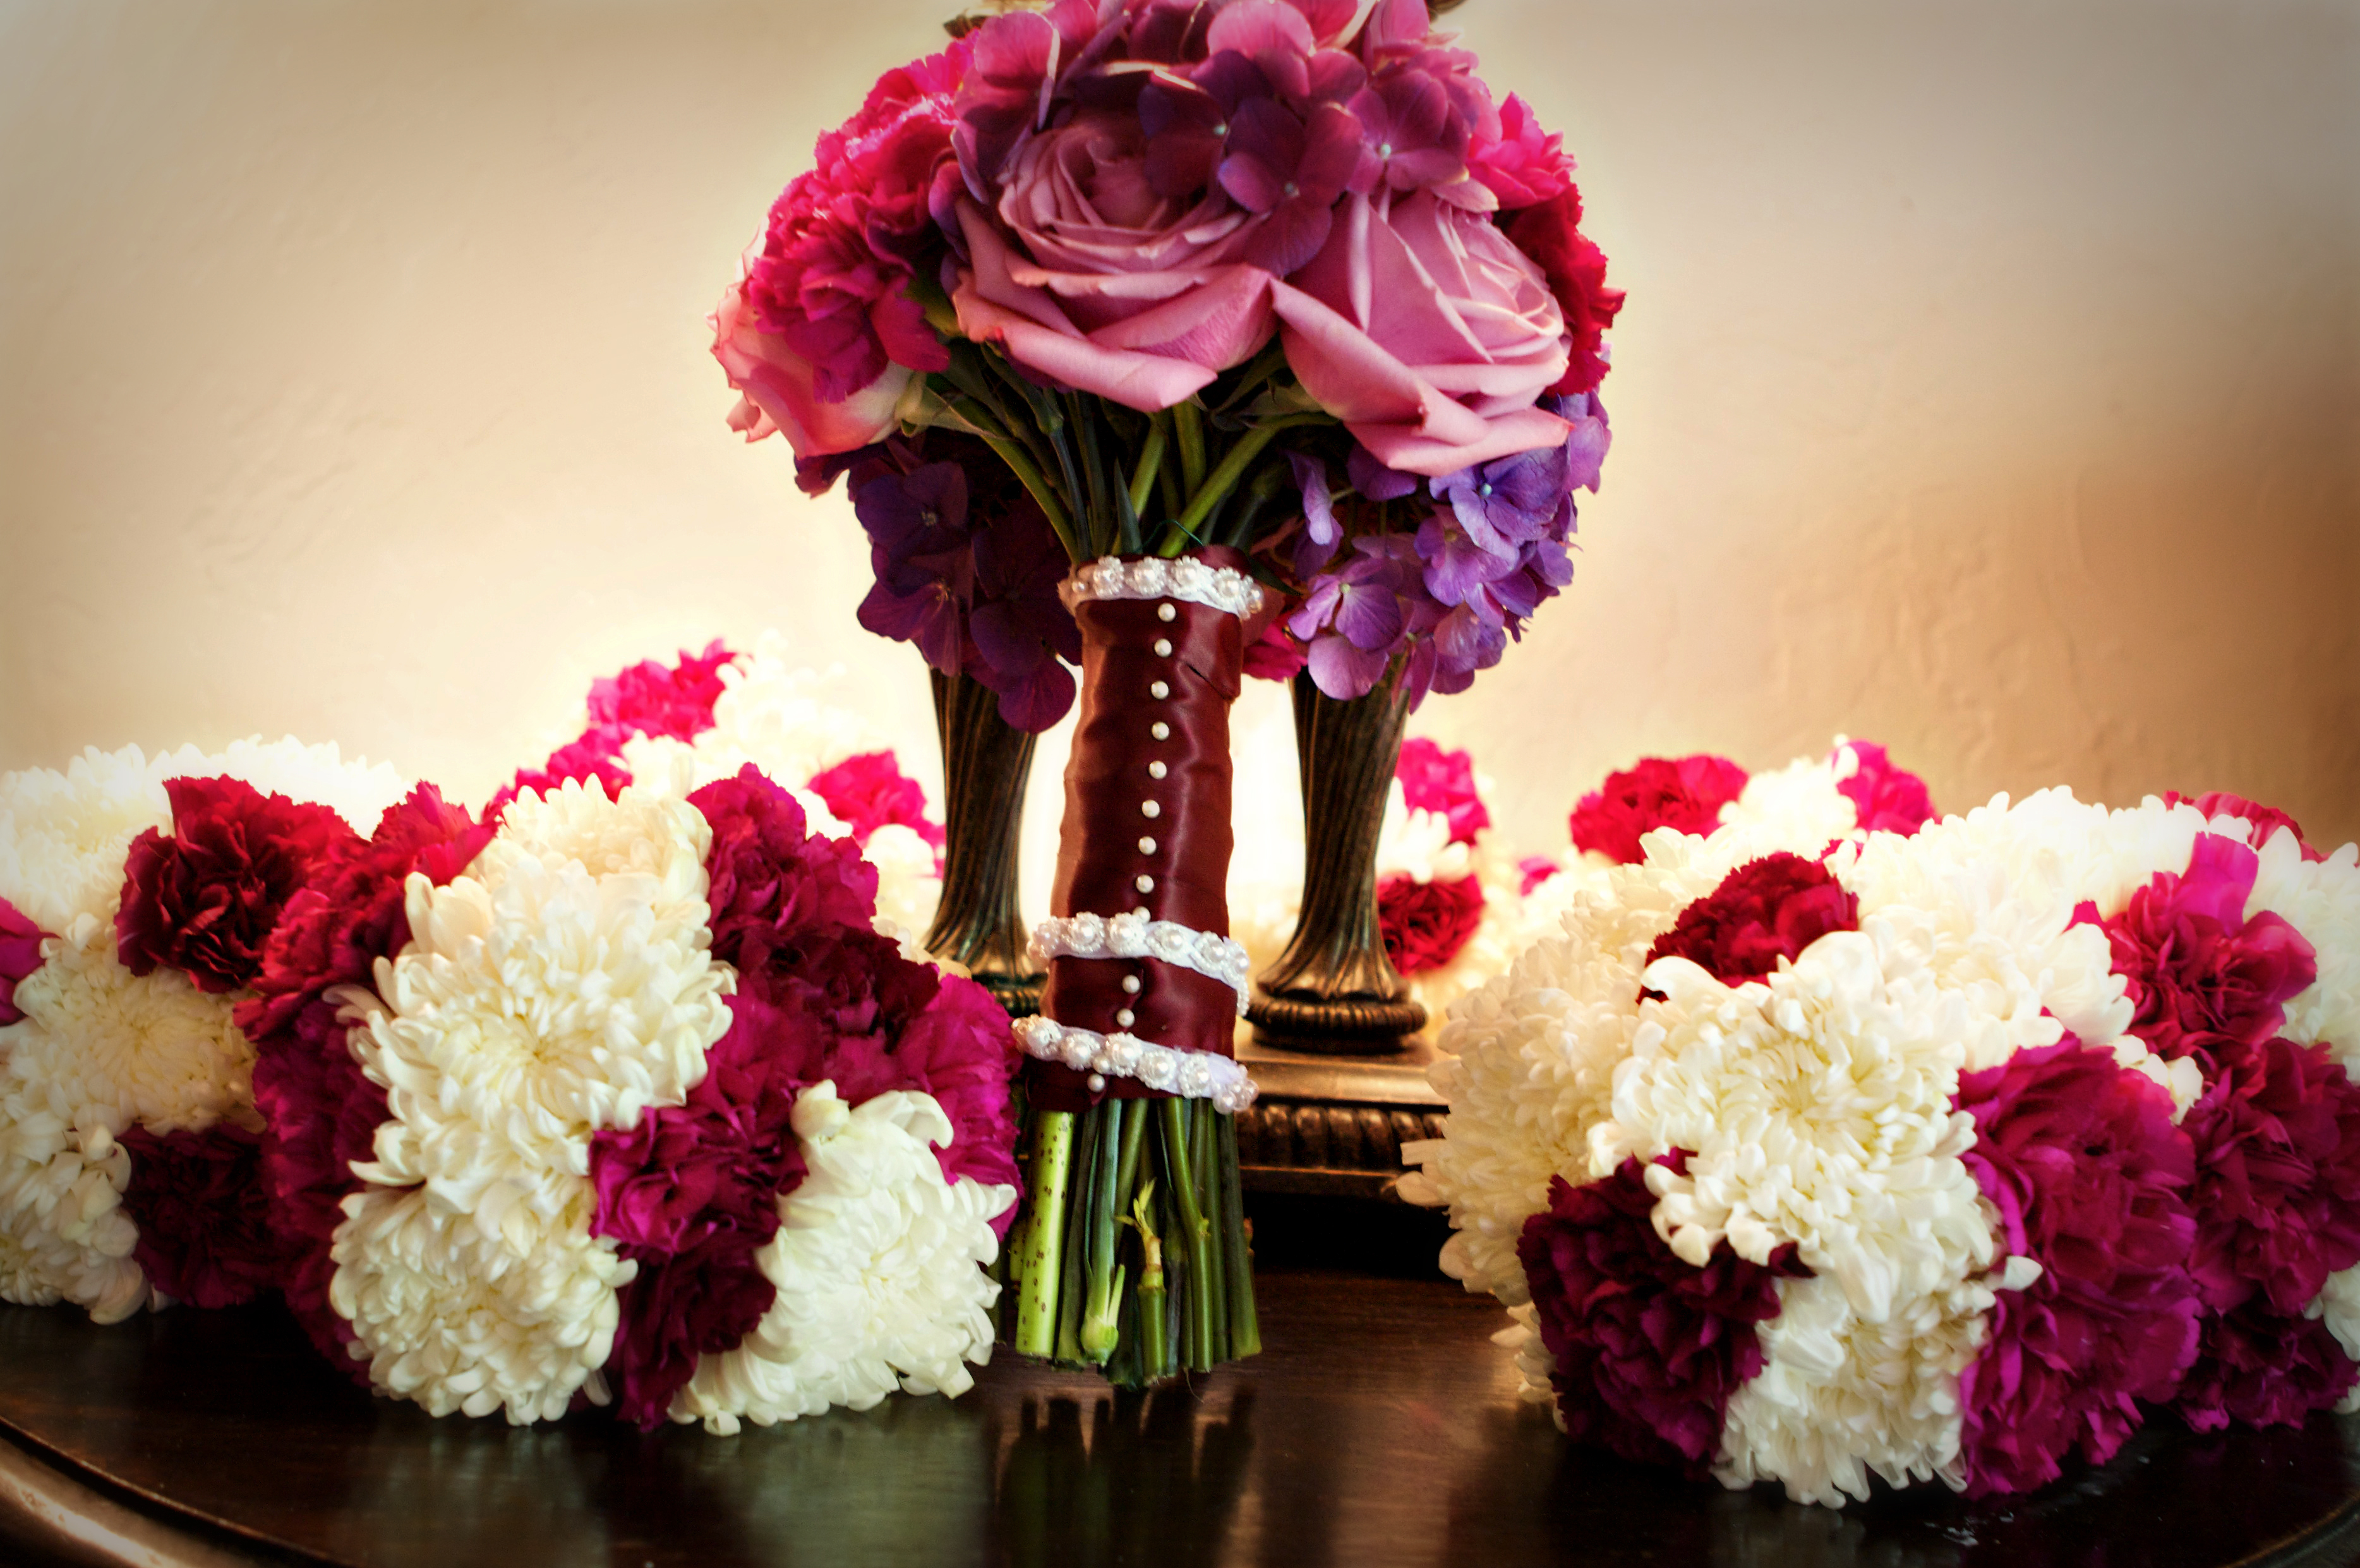 Flowers & Decor, Flowers, Floral, Bouquets, Design, Jesi haack weddings